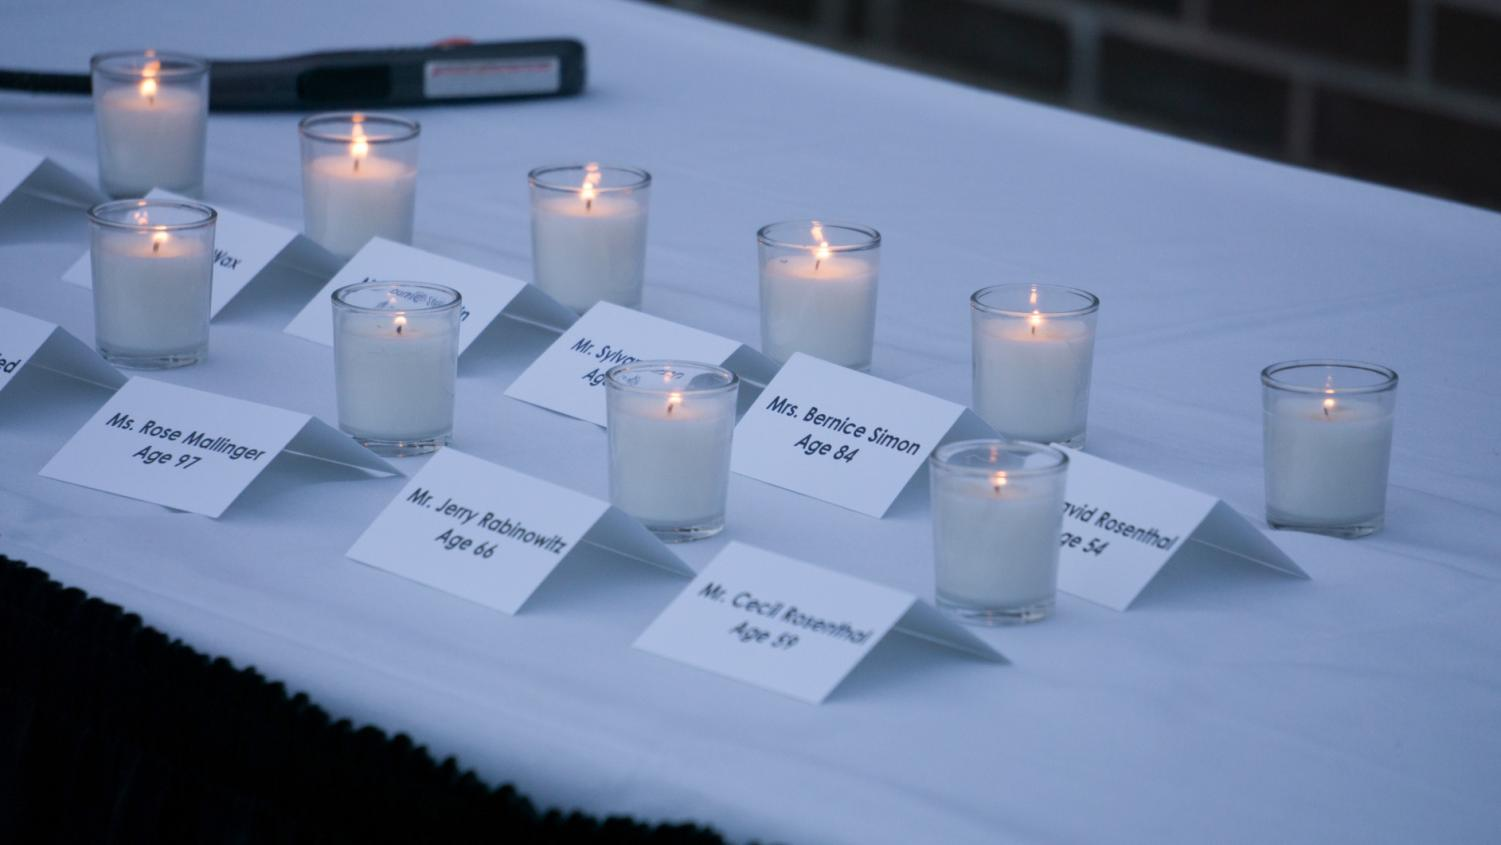 A candle is lit for each shooting victim.